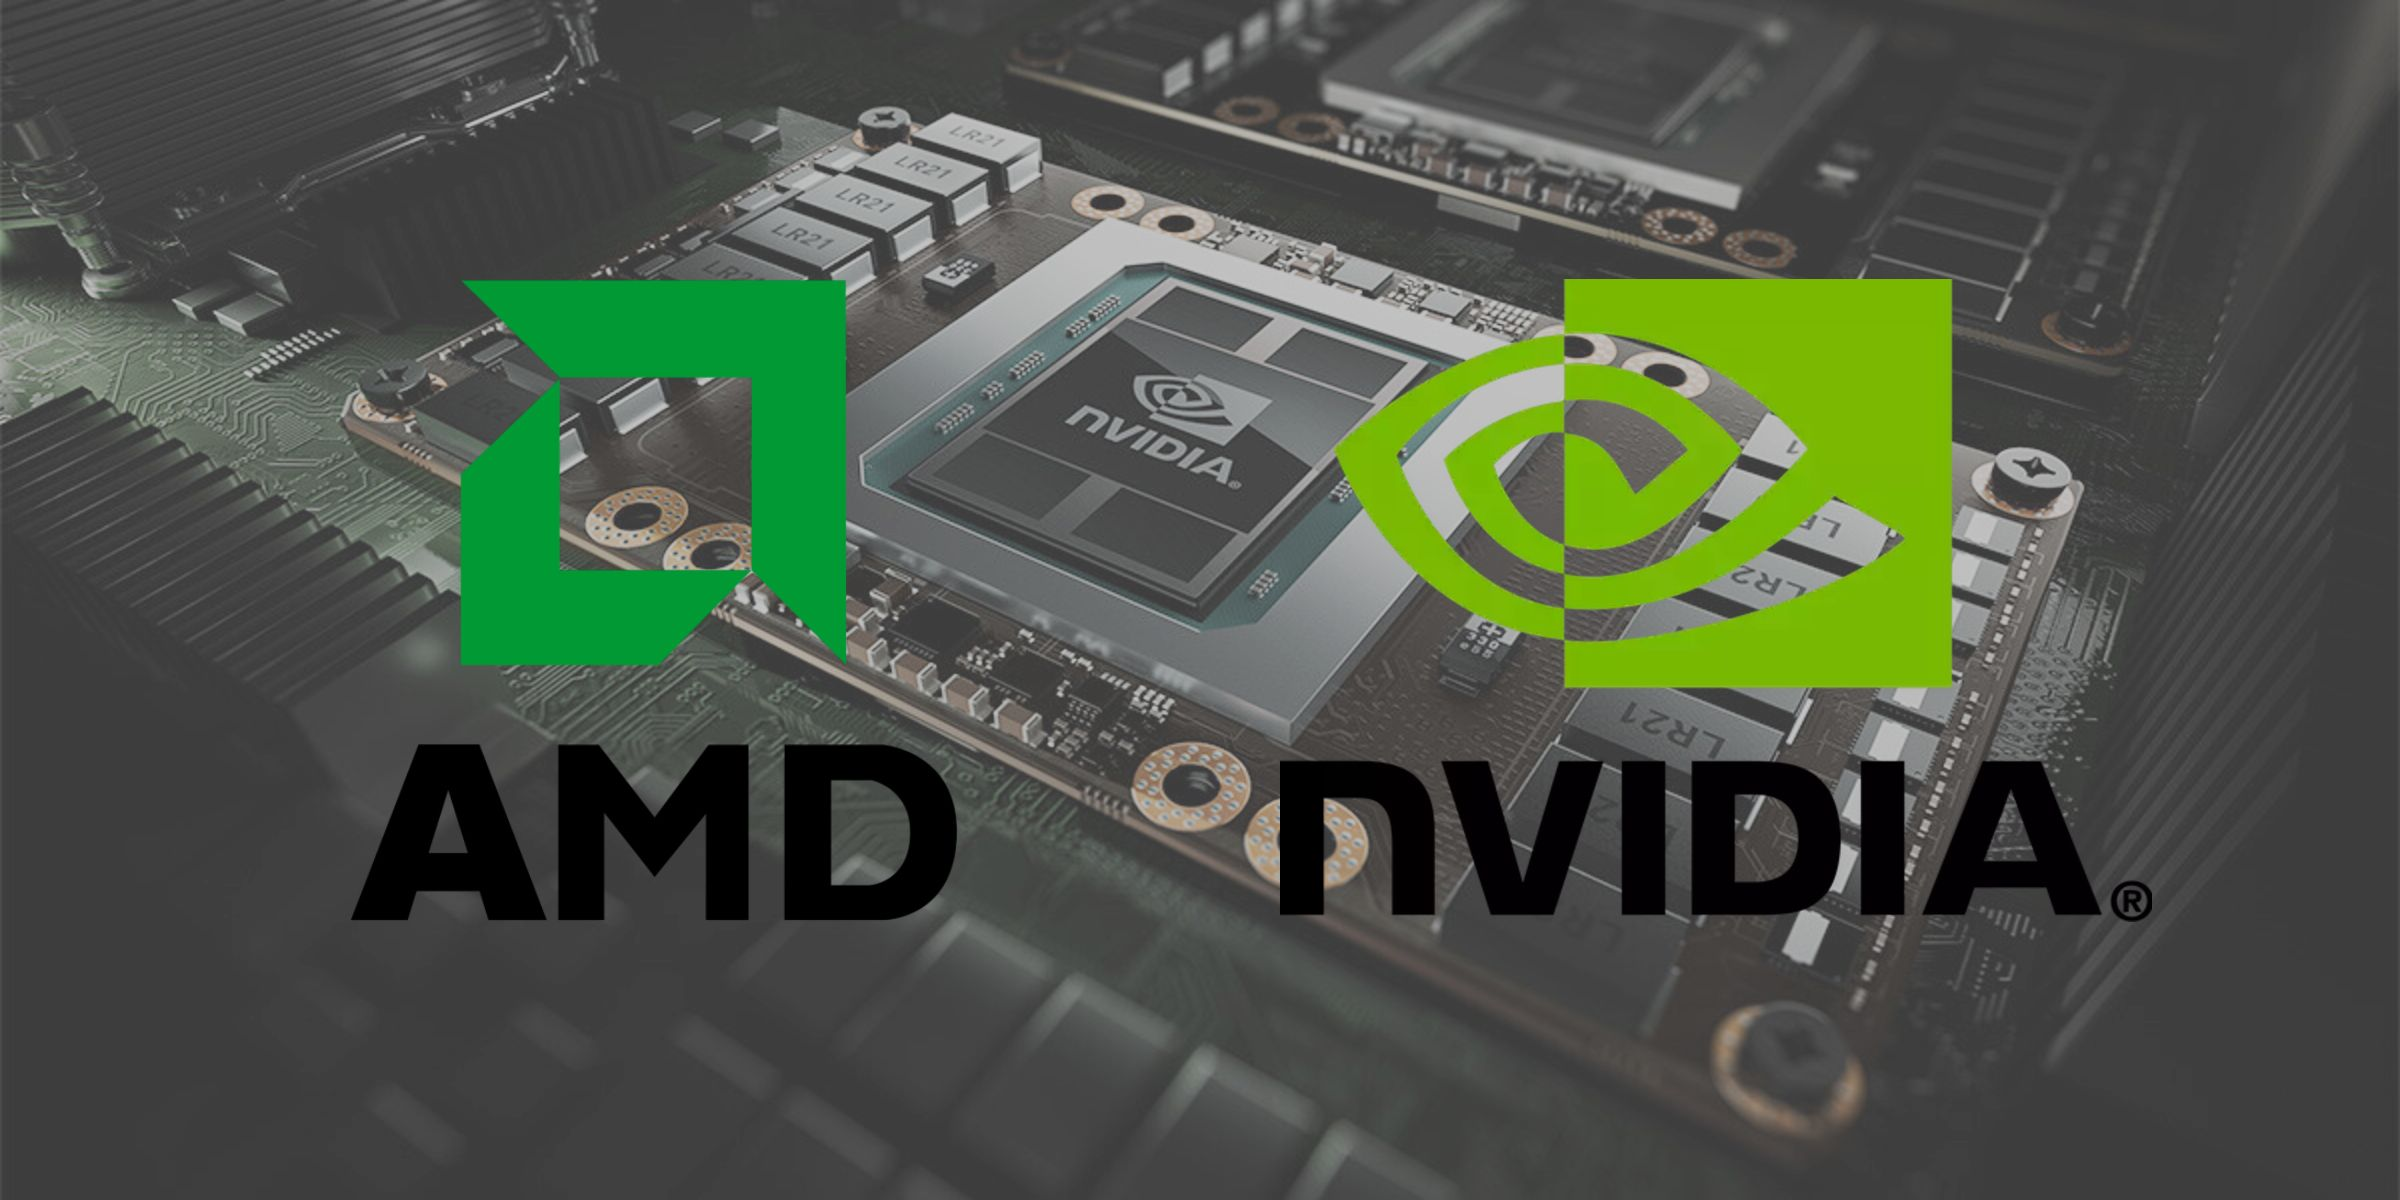 Amd Reportedly Dropping Gpu Price To Compete With Nvidia Rtx 30 Series